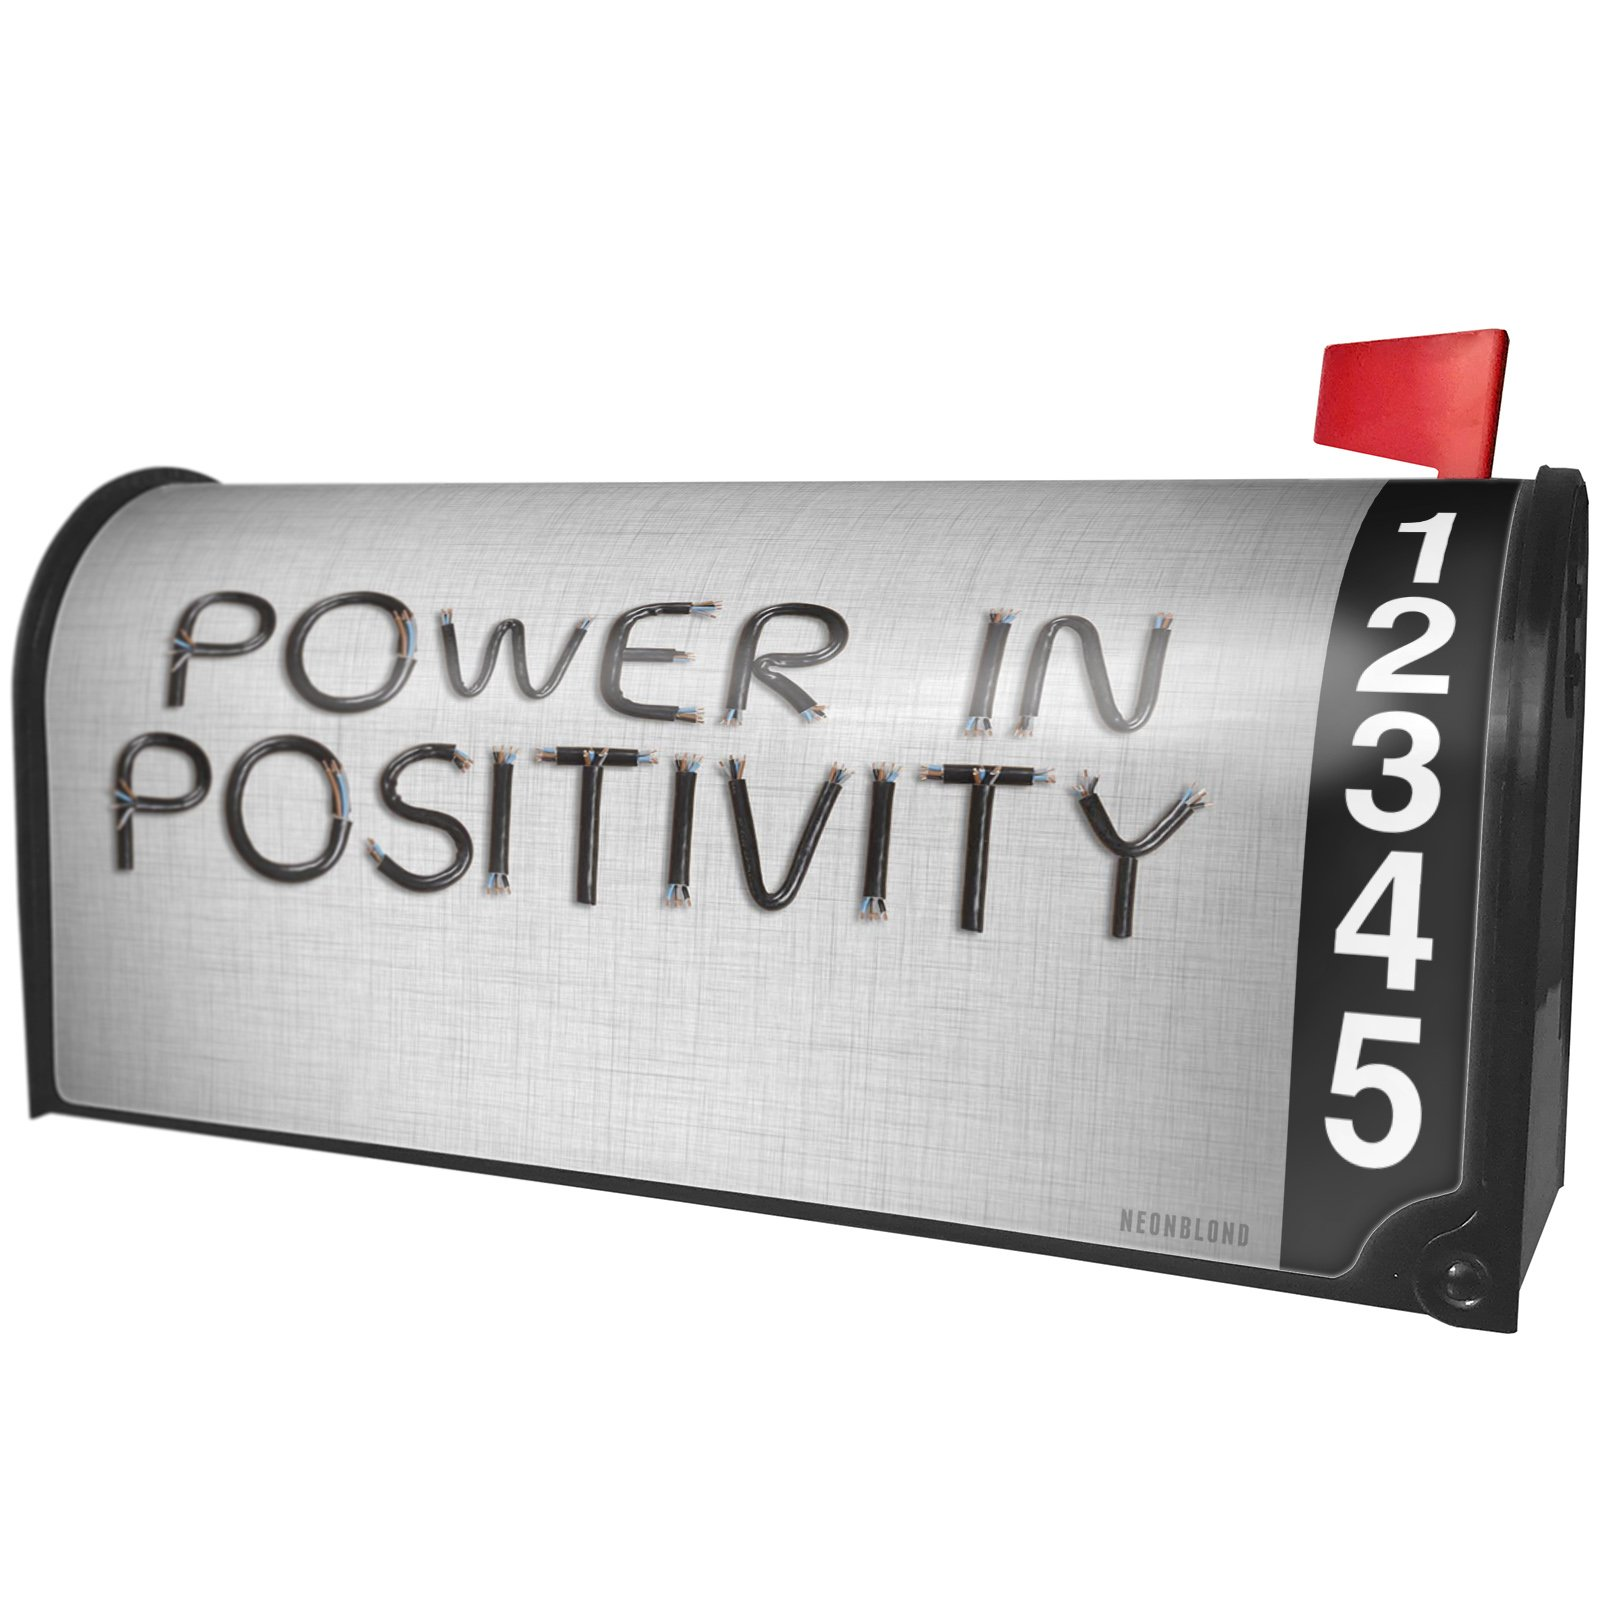 NEONBLOND Power in Positivity Electronics Wires and Cables Magnetic Mailbox Cover Custom Numbers